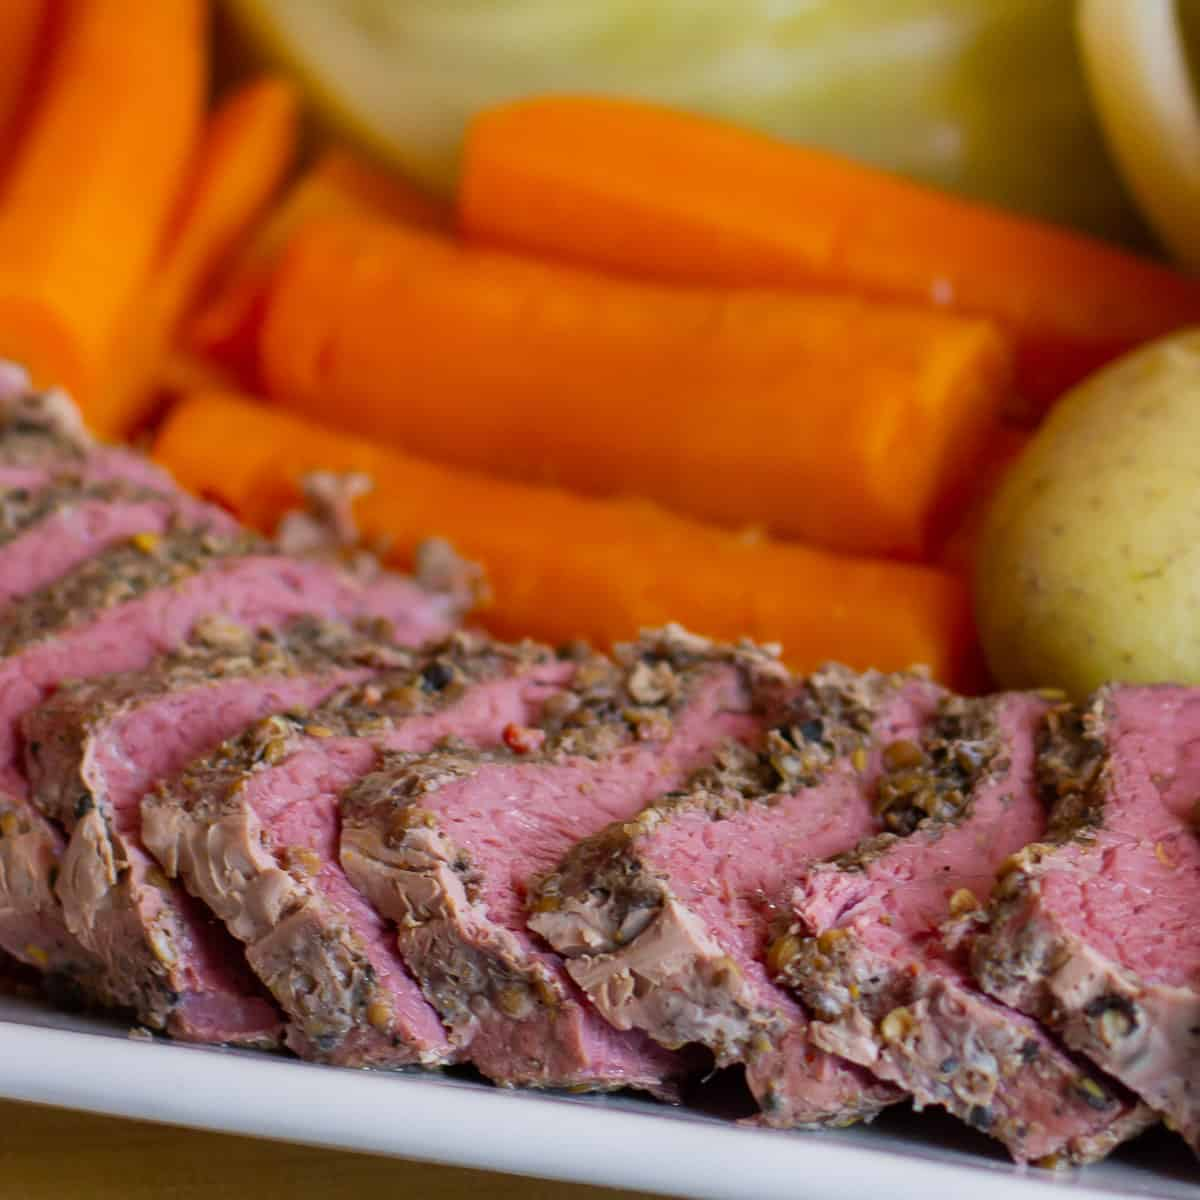 Close up picture of sliced corned beef brisket and carrots